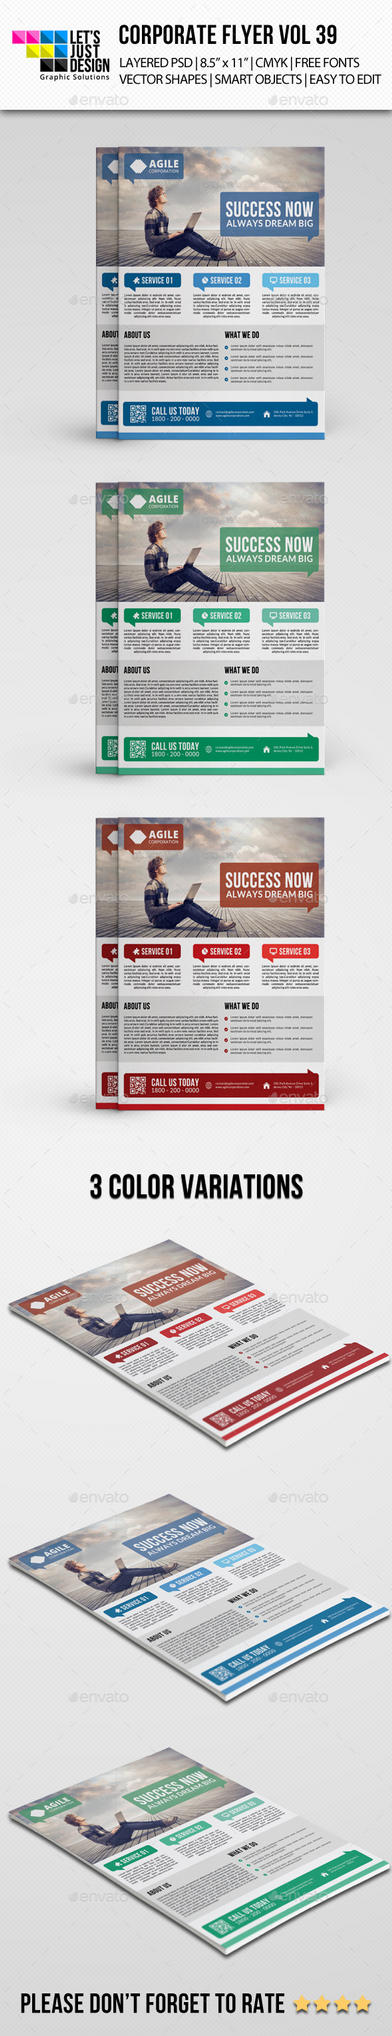 Corporate Flyer Template Vol 39 by jasonmendes